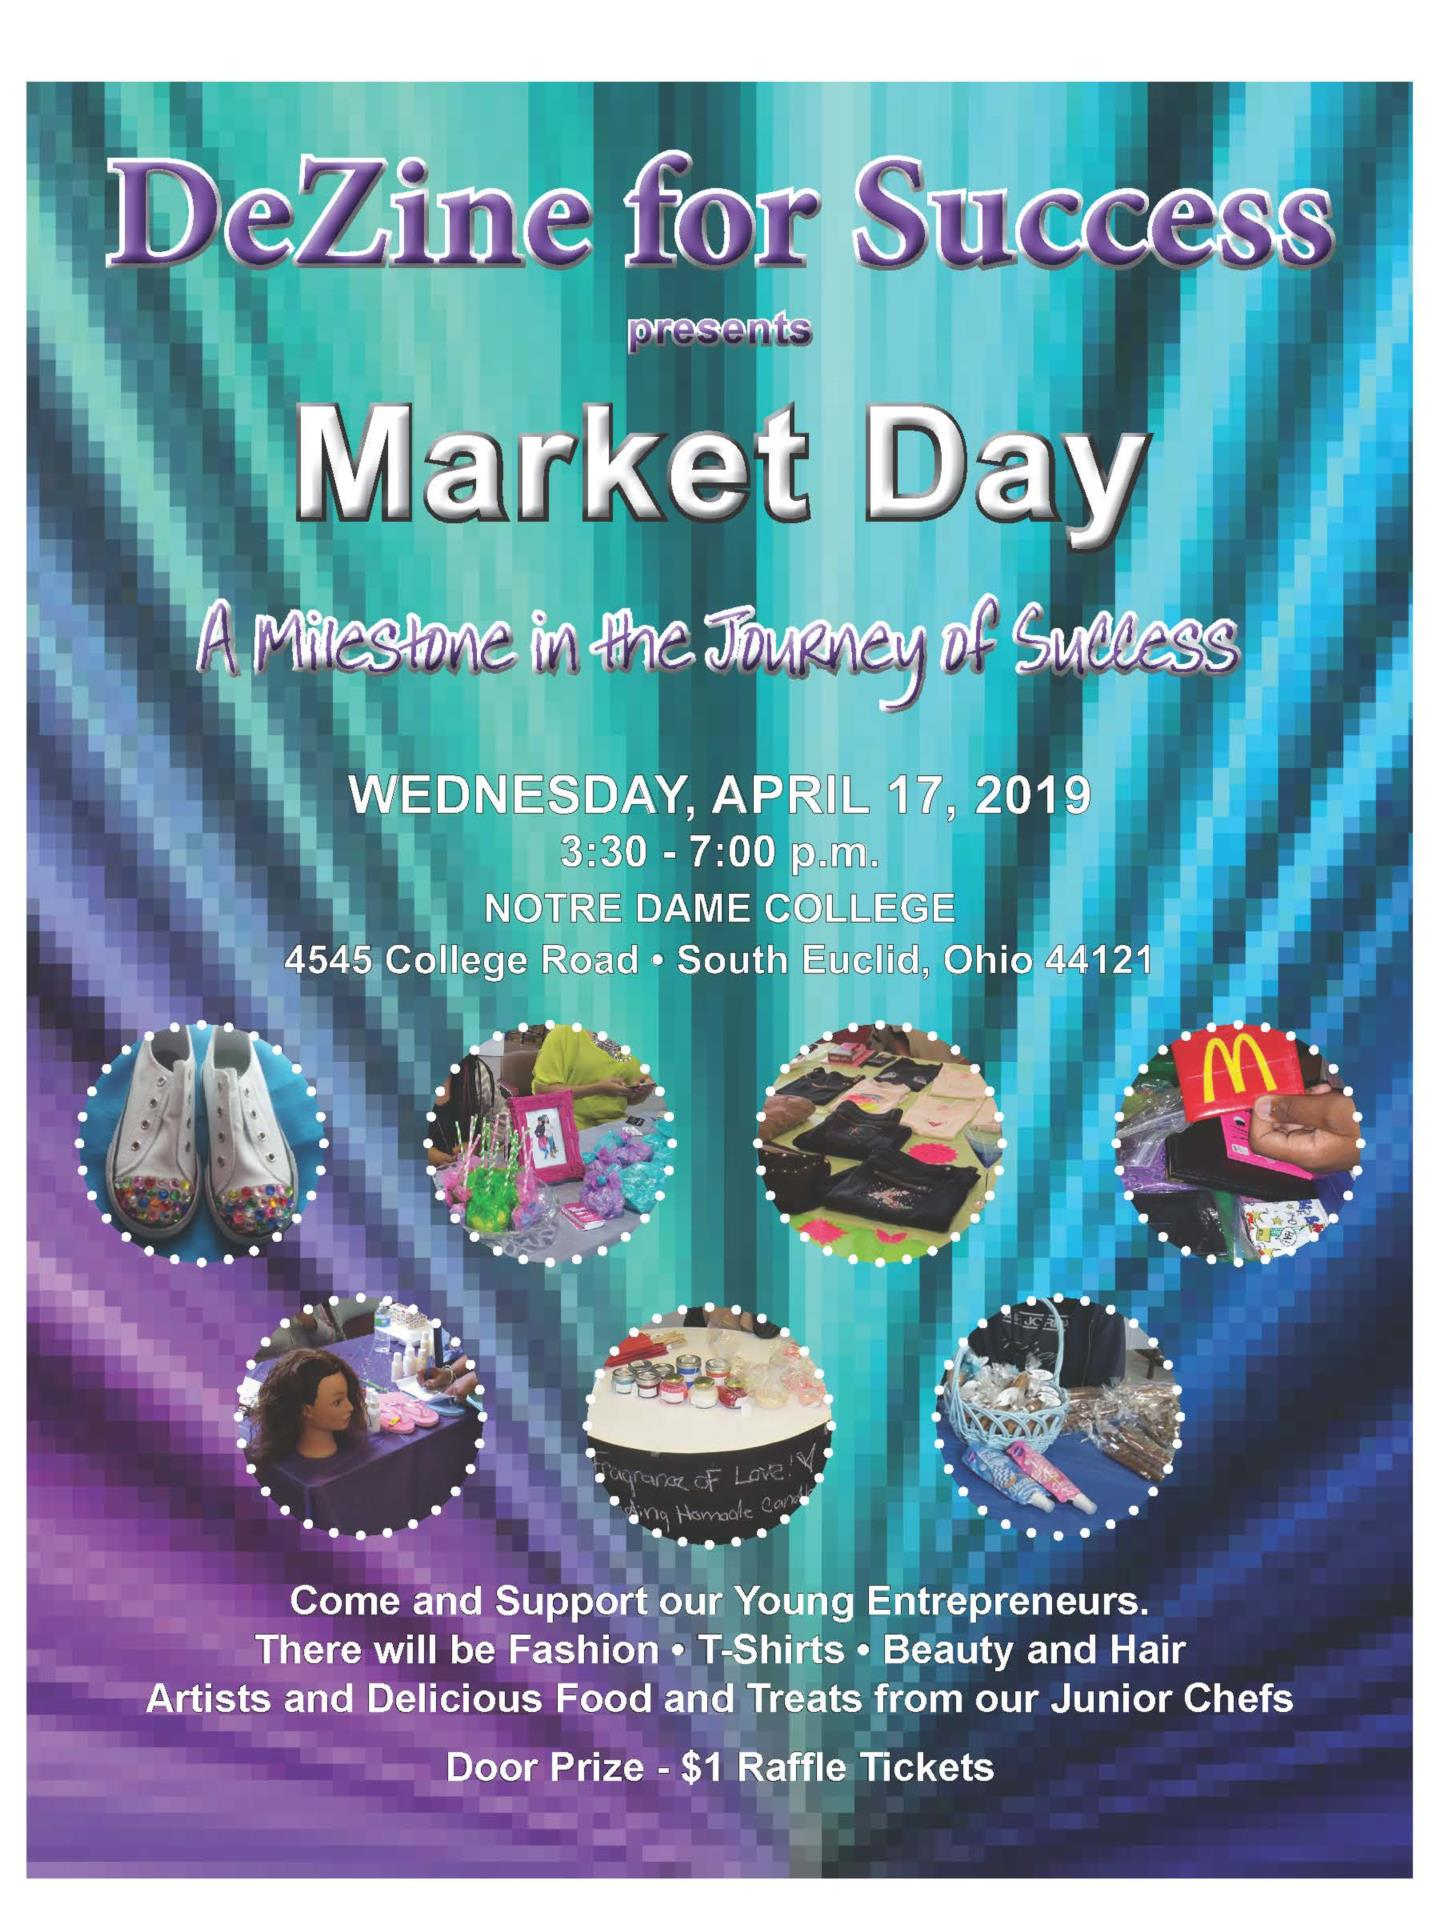 Market Day flyer